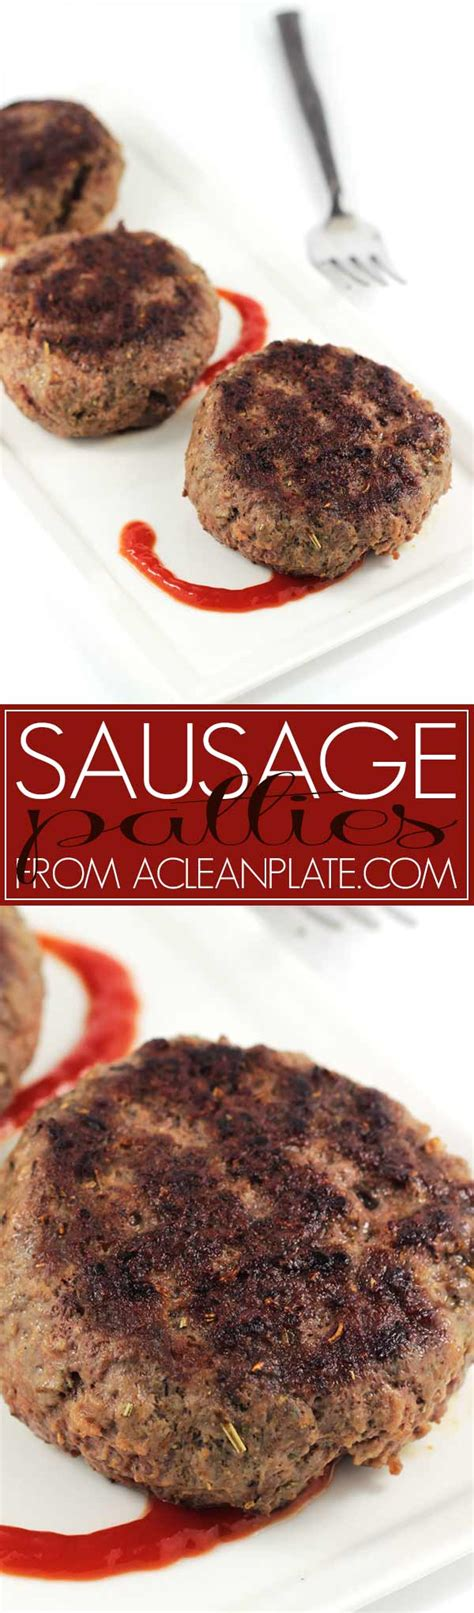 E Book Sausage Recipes For And Cooking With Sausage sausage patties a clean plate